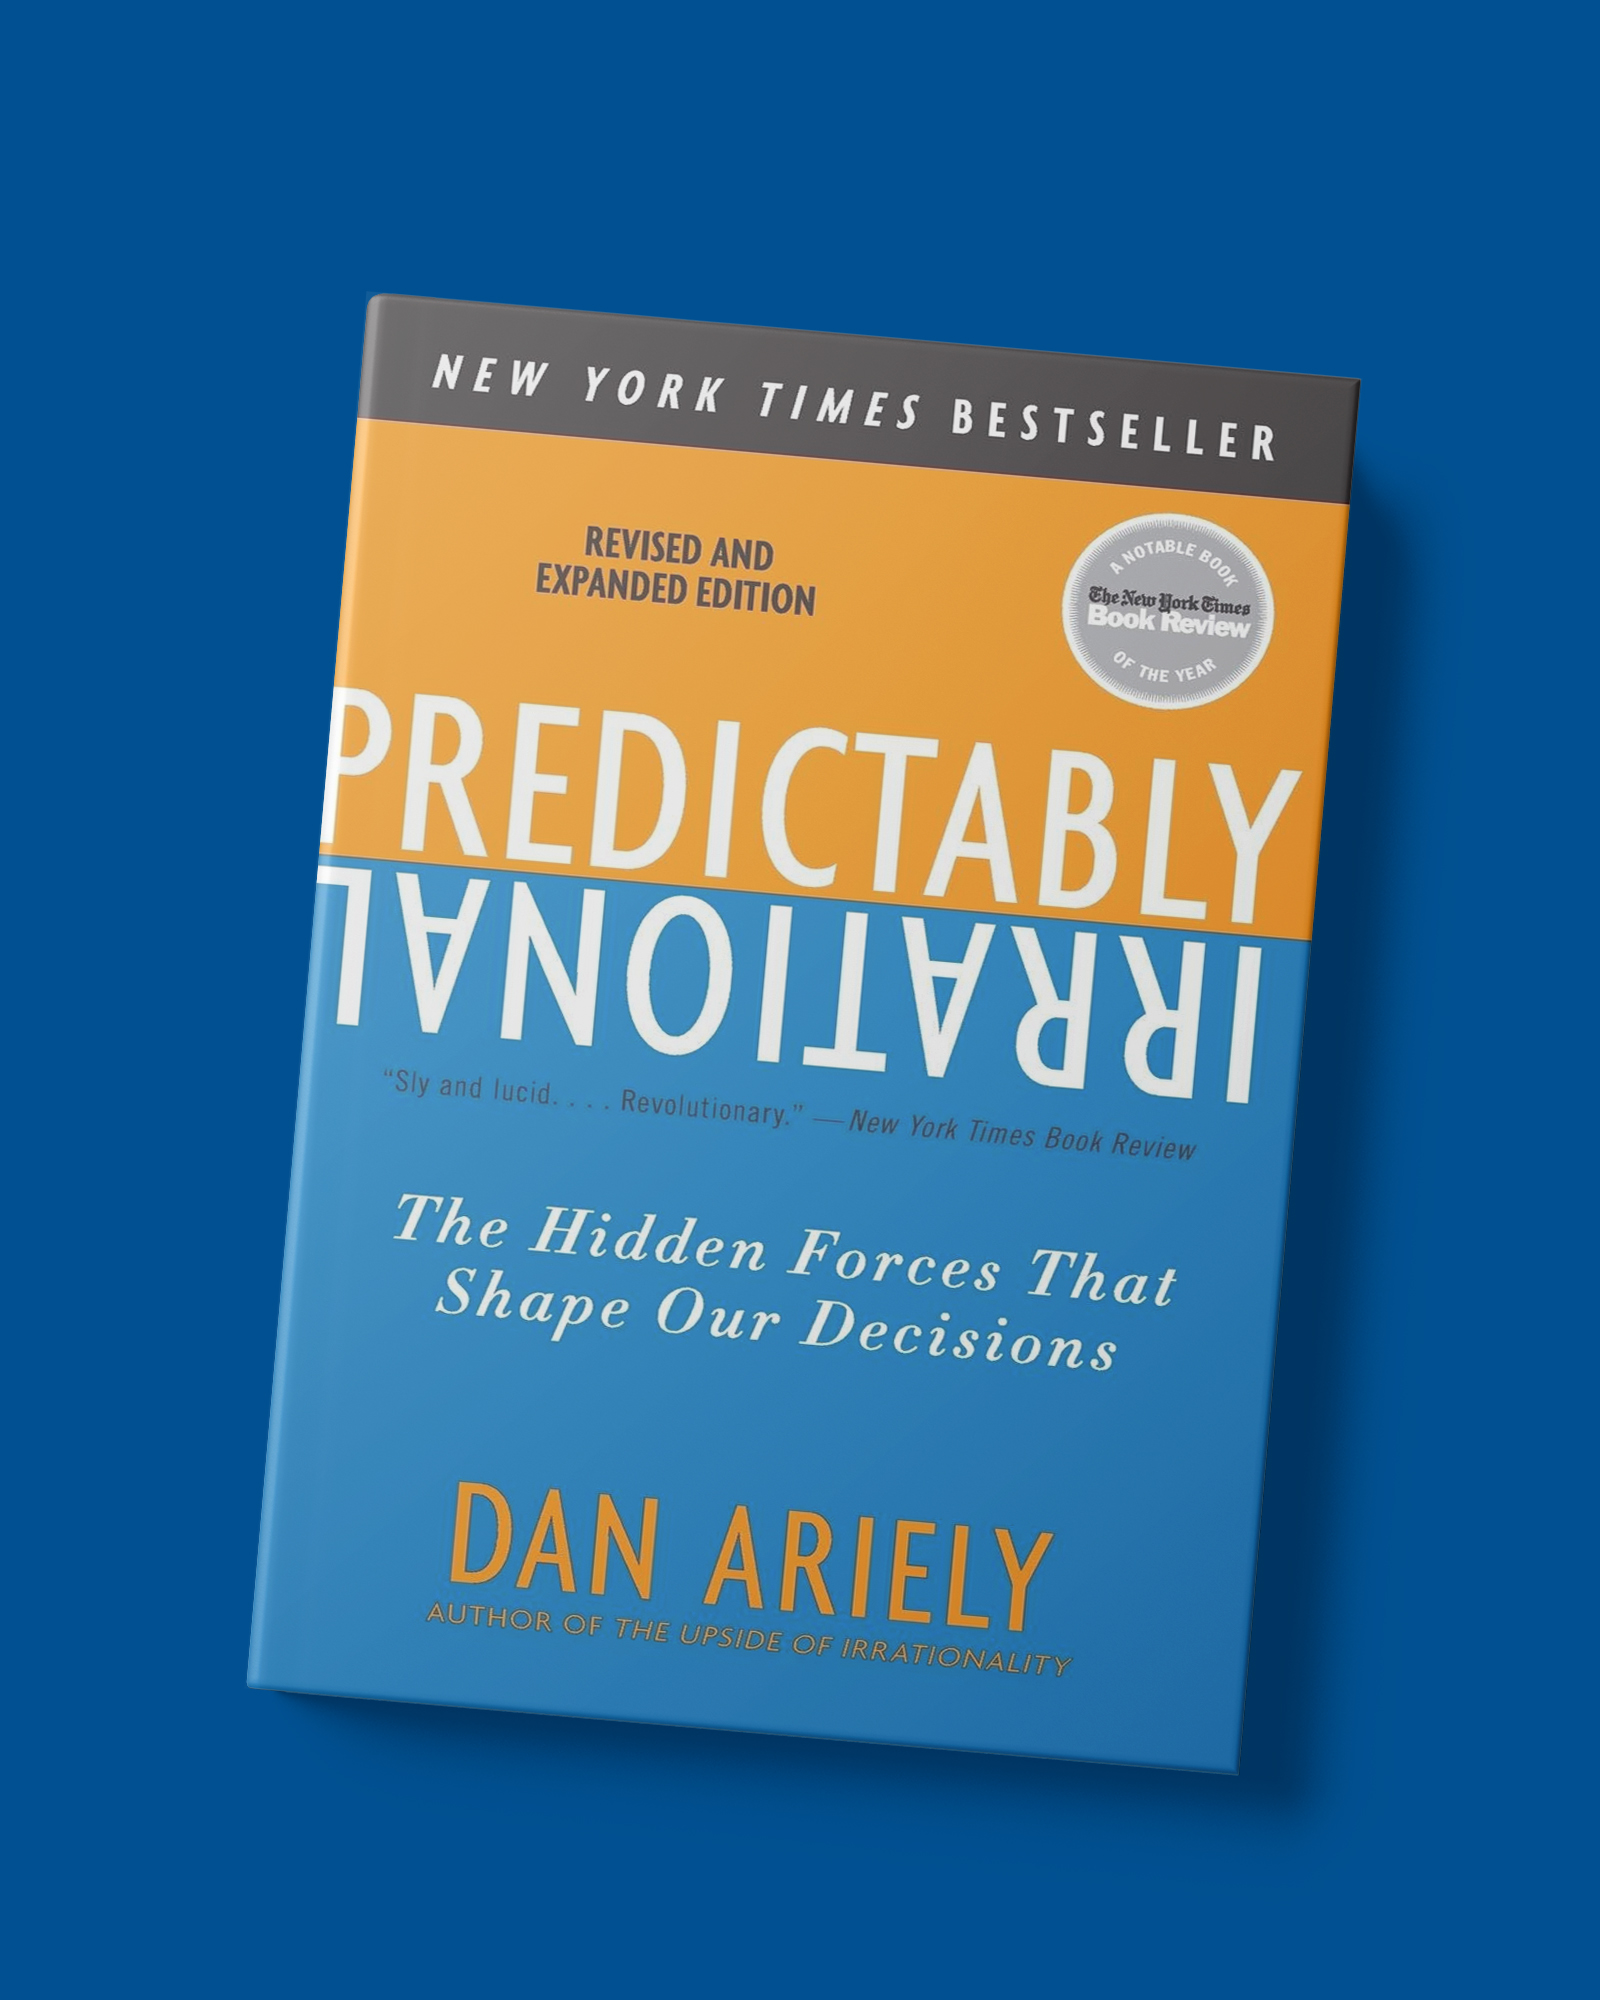 TDC | Workplace design - Book_Predictably Irrational